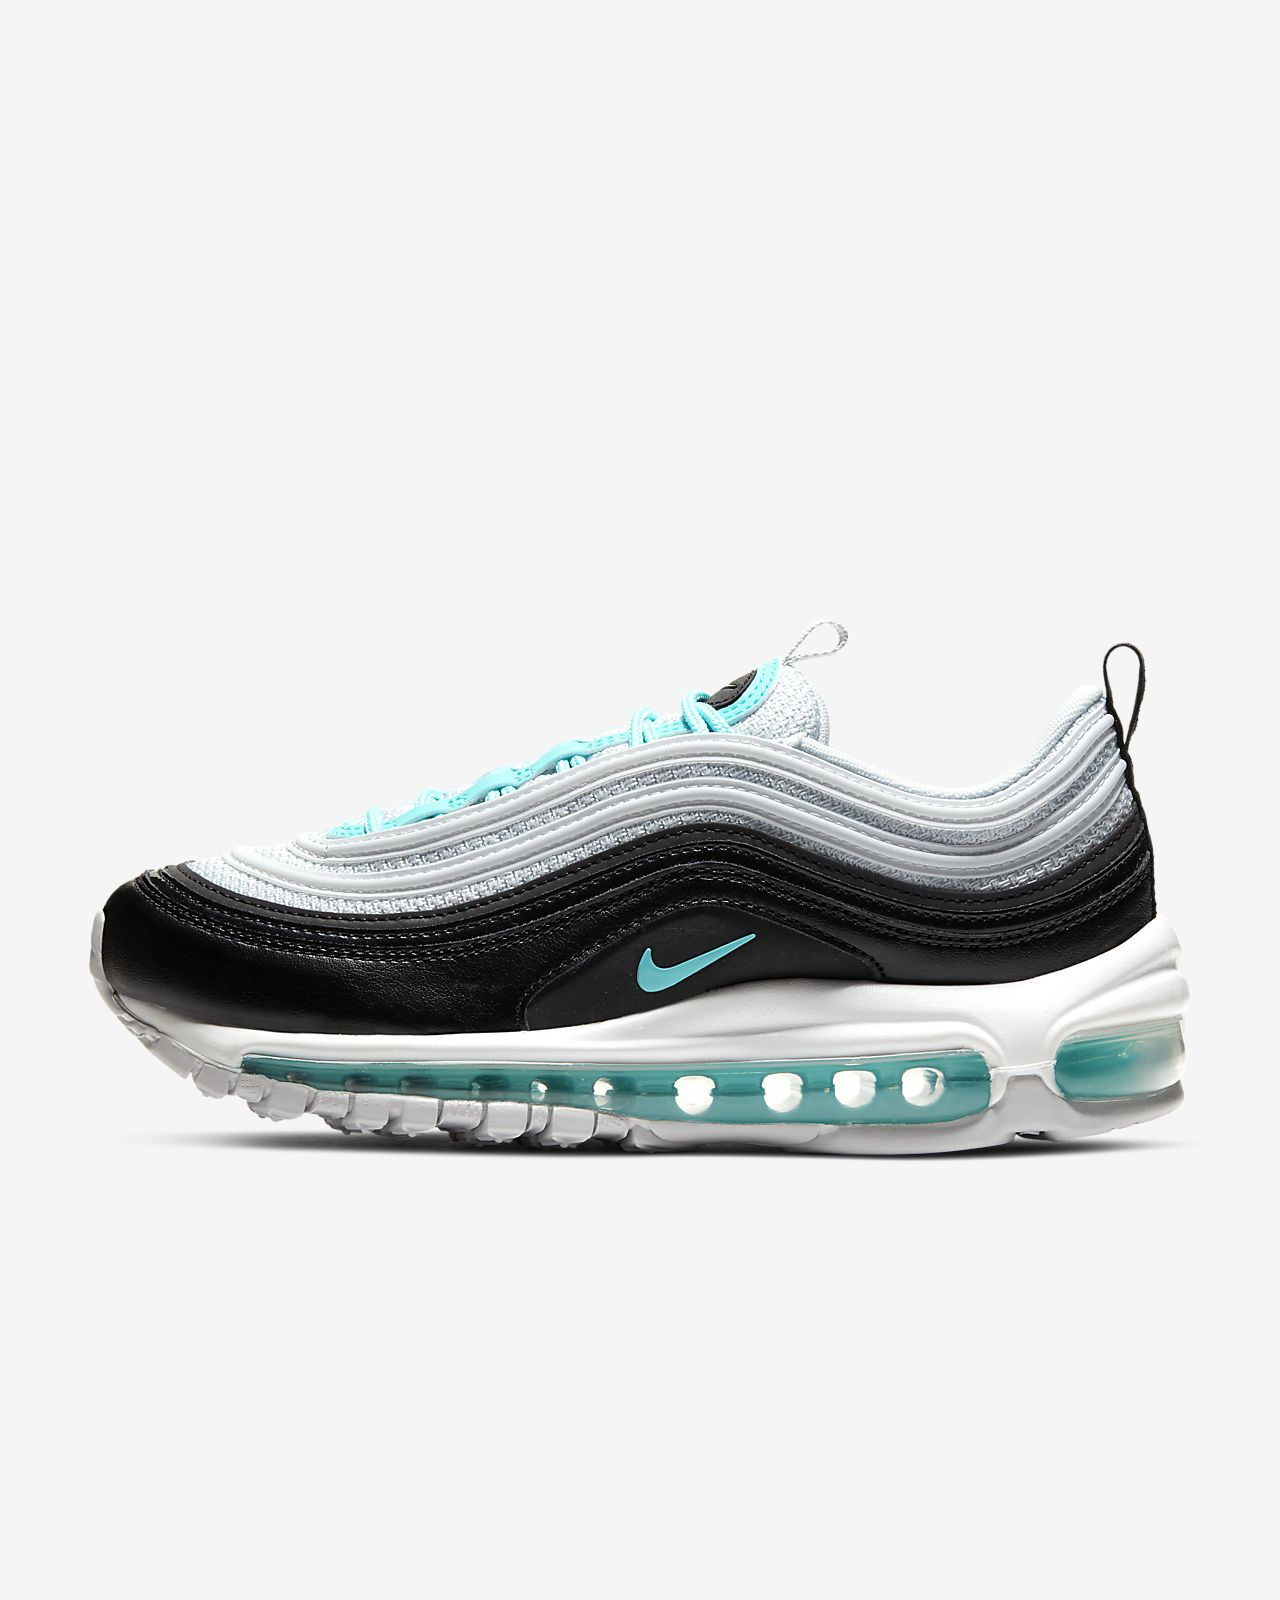 newest 3c929 c1f58 Nike Air Max 97 Women's Shoe